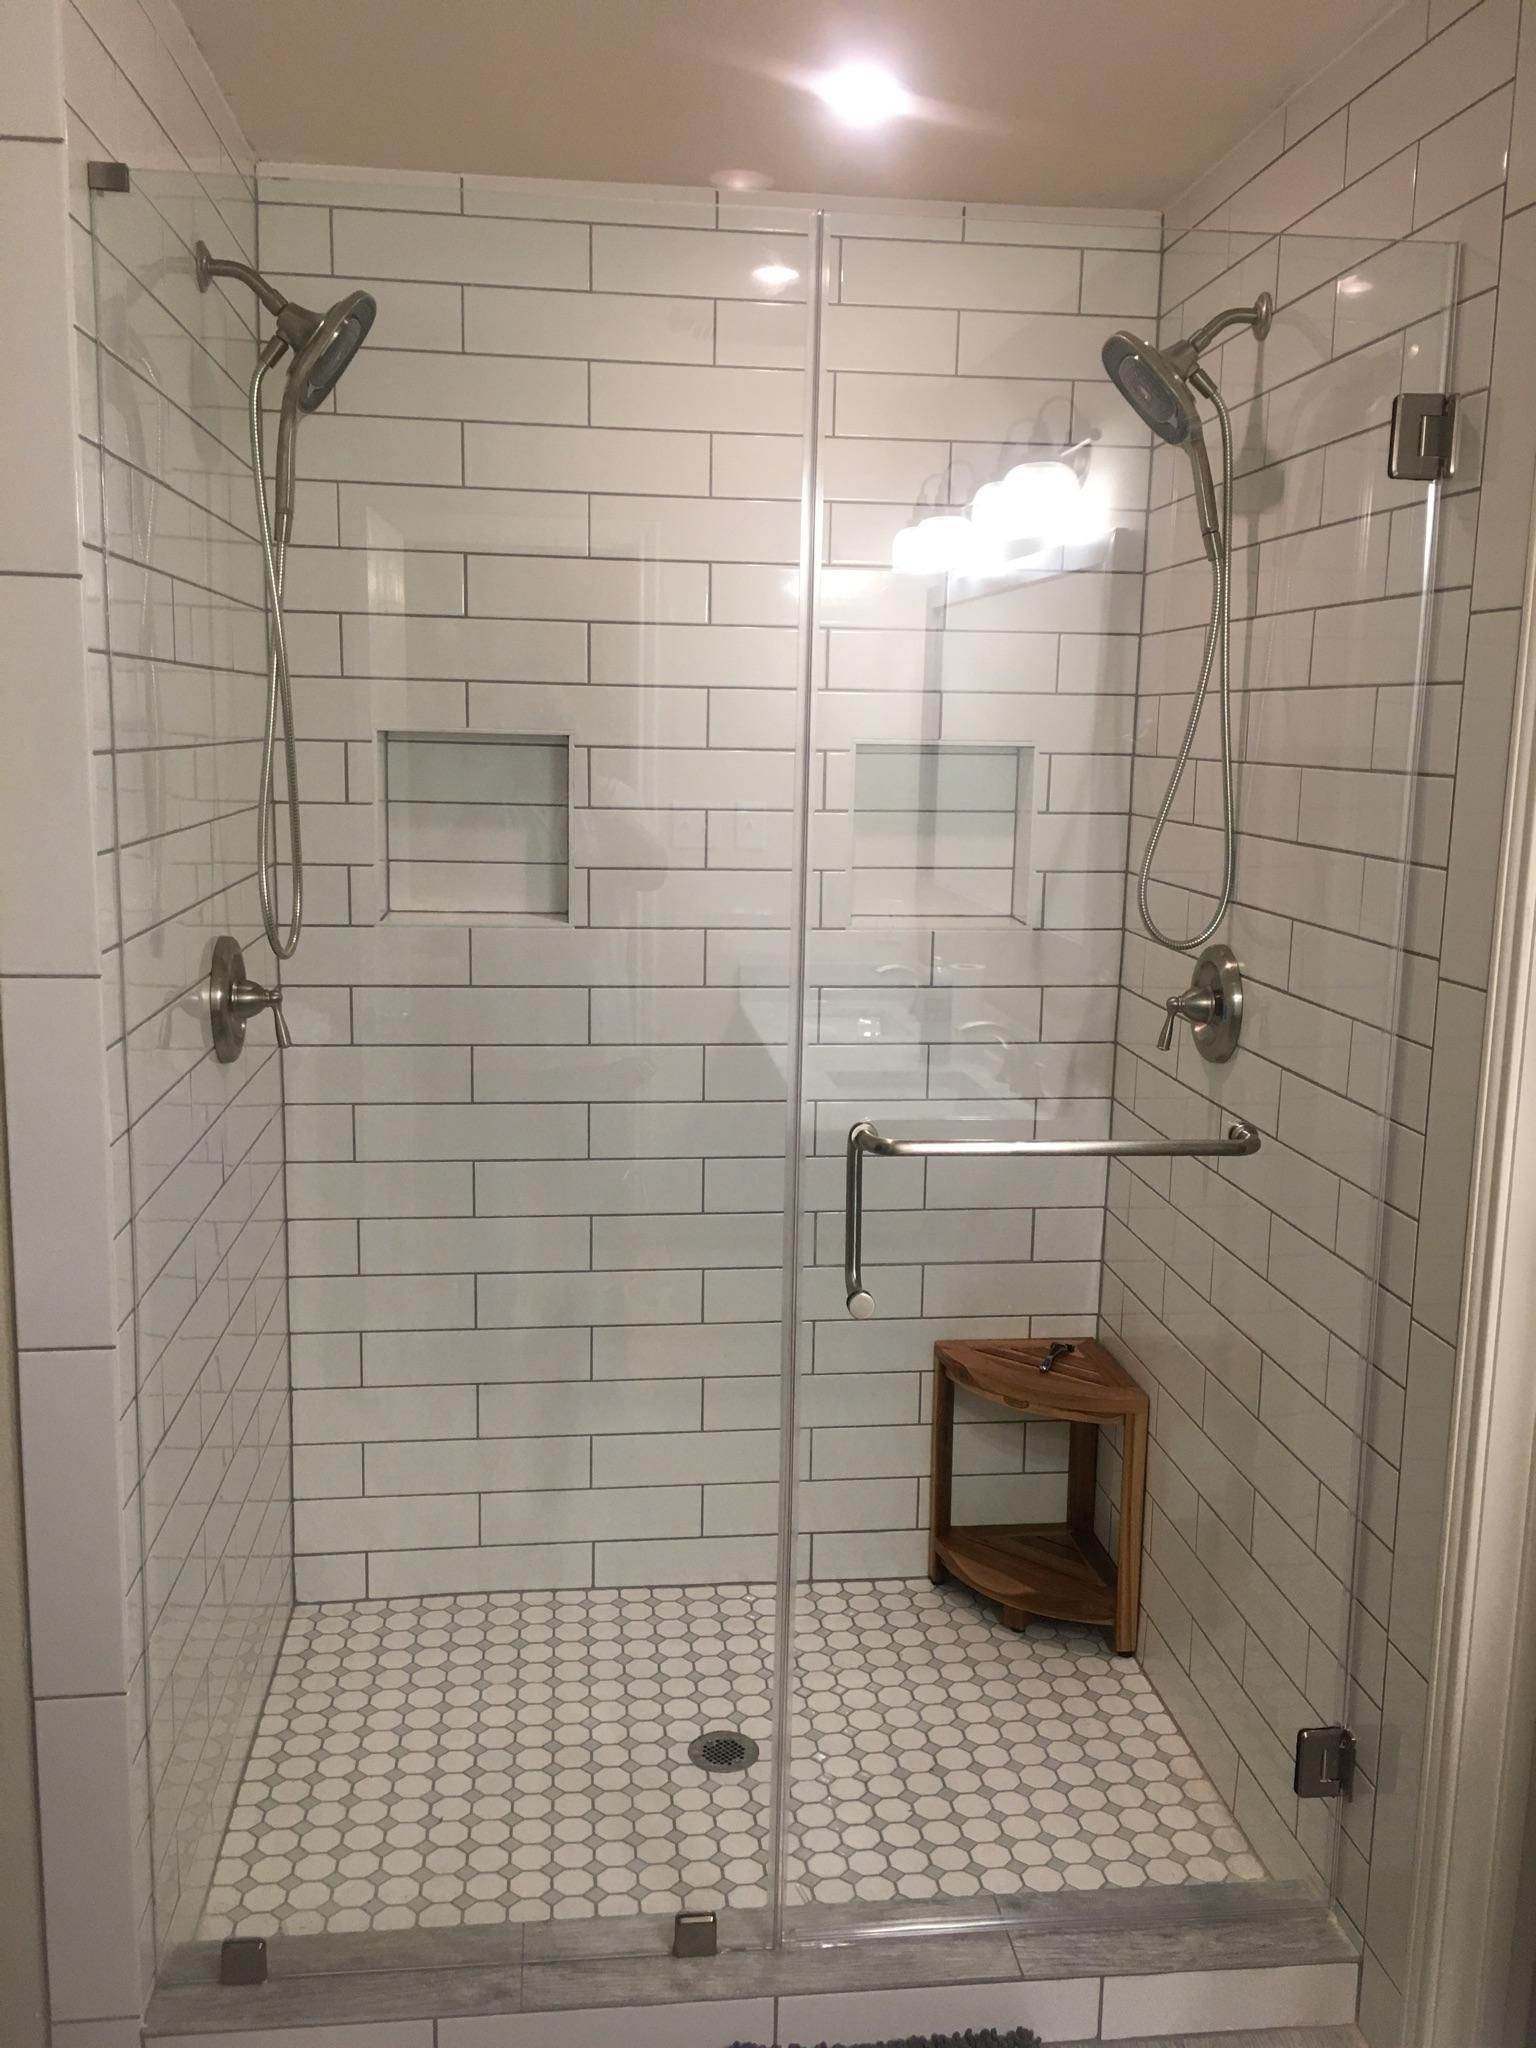 "Master Bath remodel 4"" x 16"" subway tile with gray grout ..."